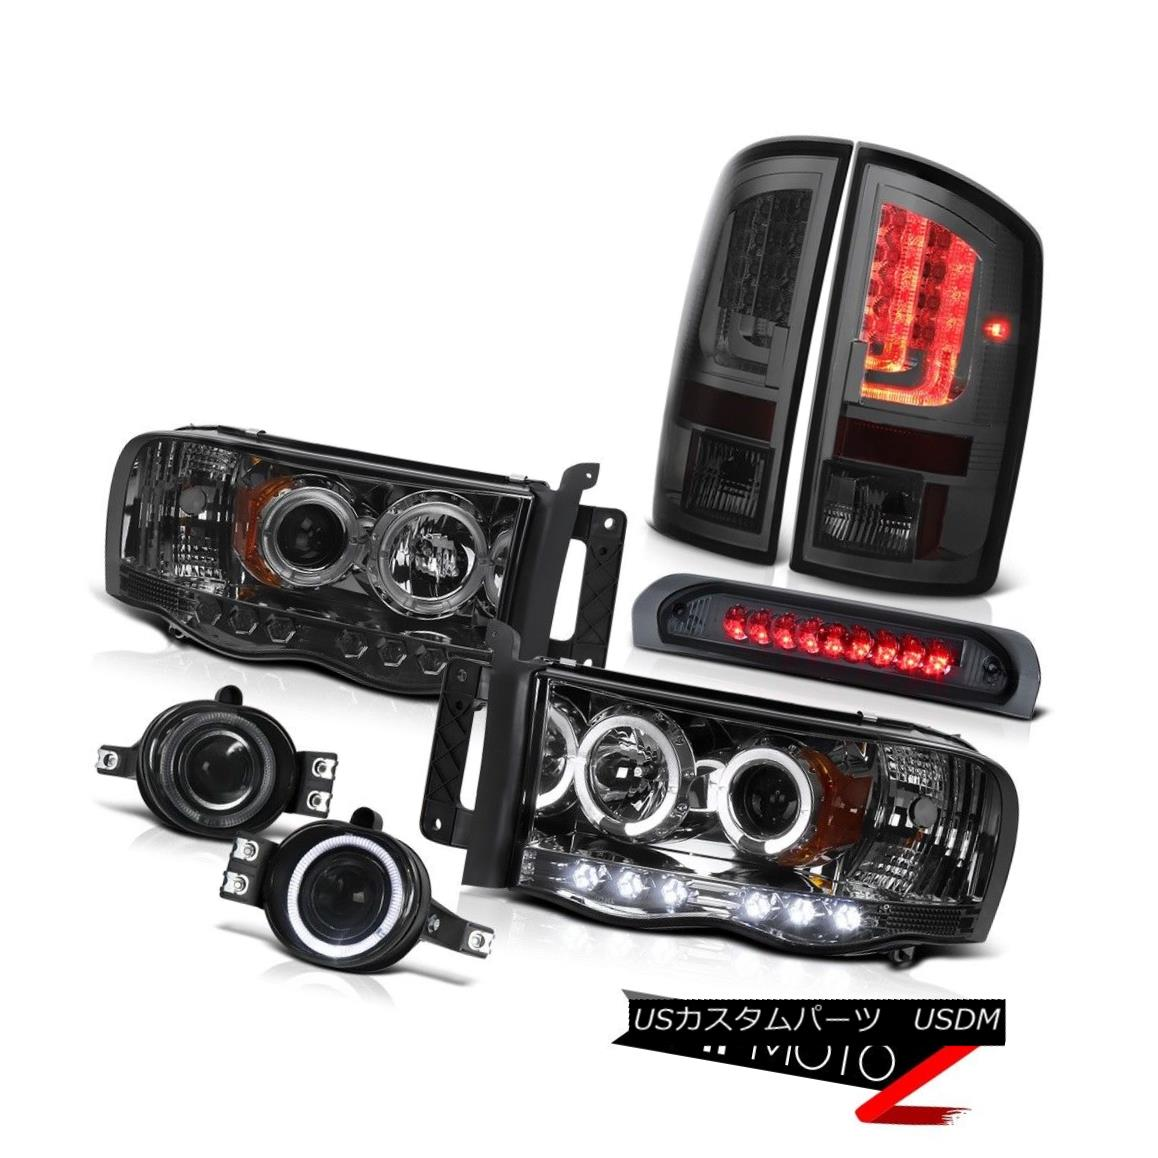 テールライト 2003-2005 Dodge Ram 3500 ST Tail Lights Headlamps Fog 3RD Brake Lamp